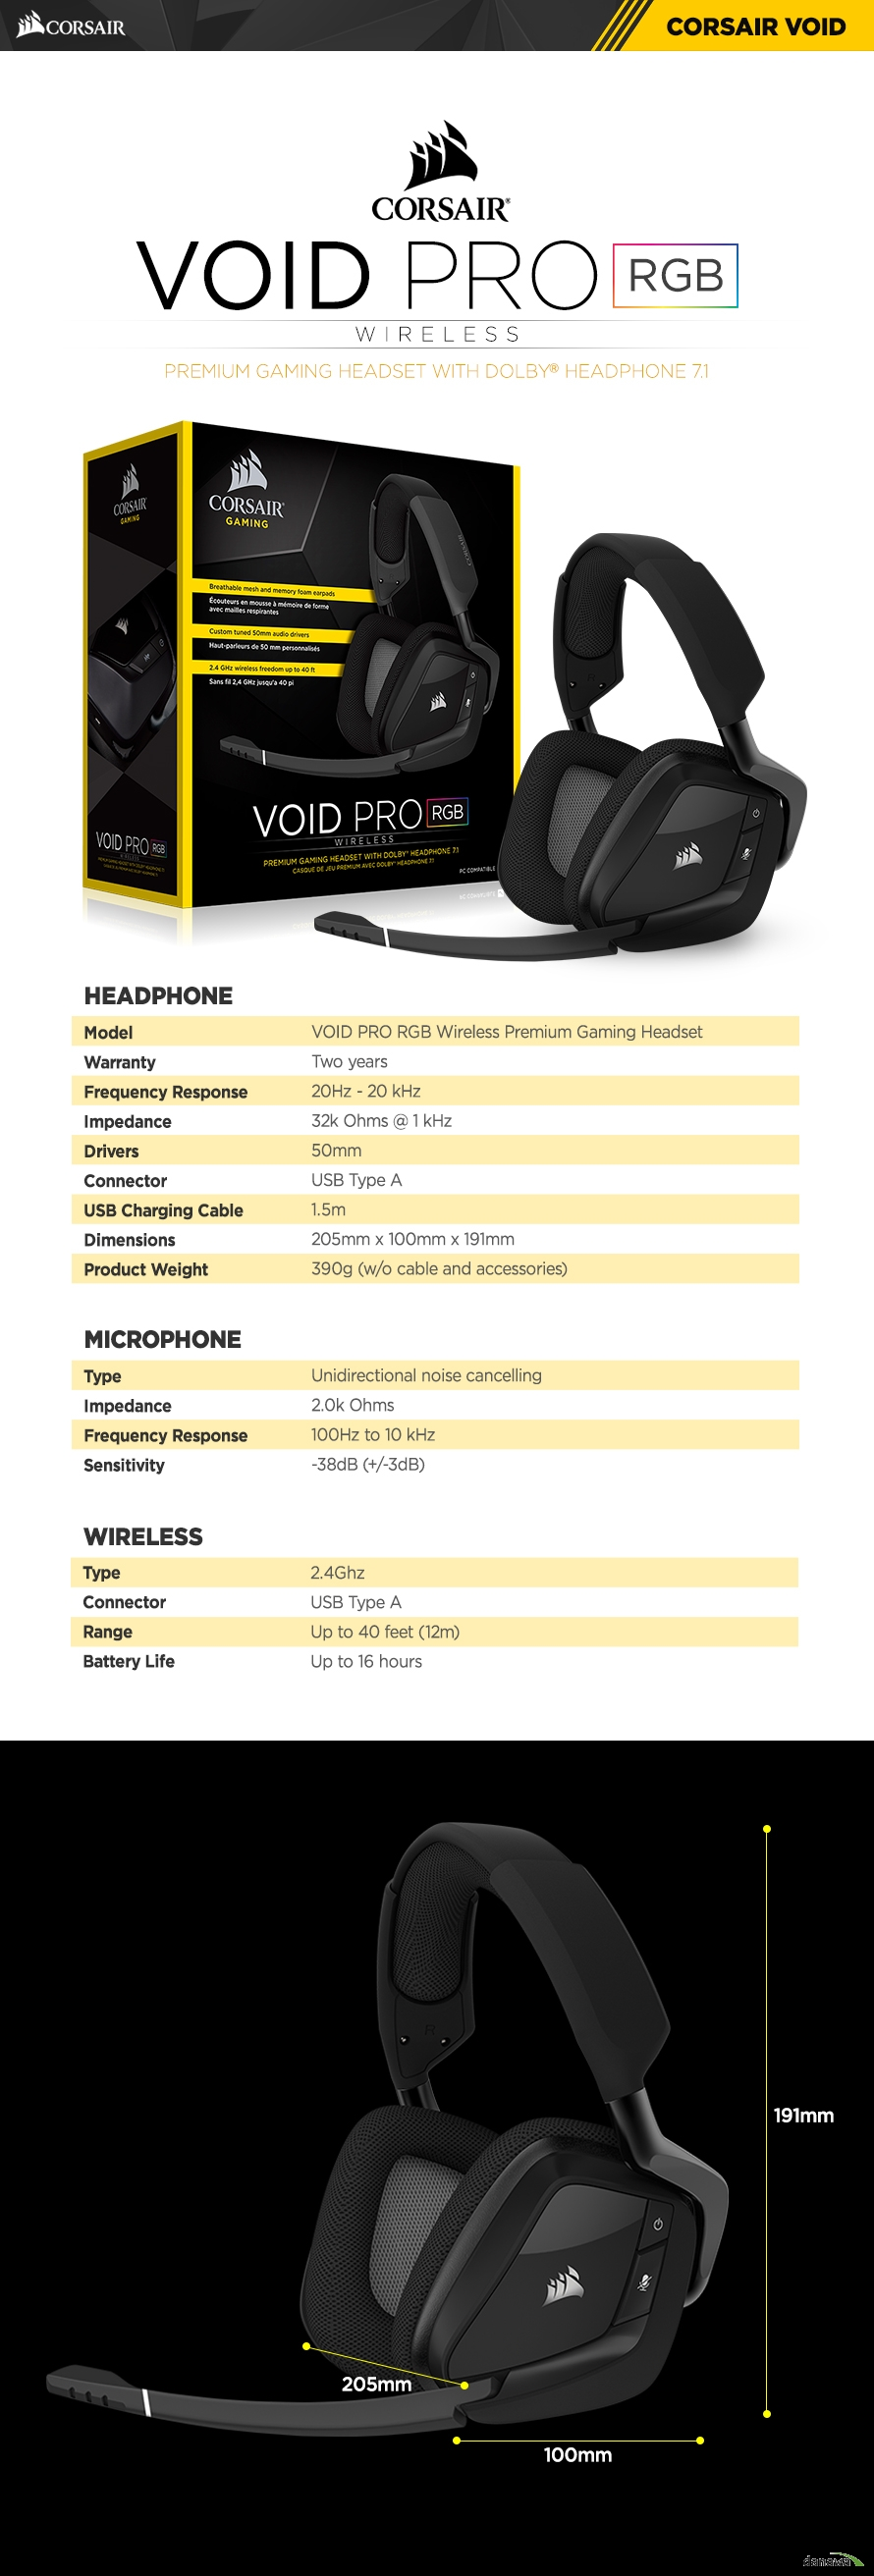 HEADPHONEModelVOID PRO RGB Wireless Premium Gaming HeadsetWarrantyTwo yearsFrequency Response20Hz - 20 kHzImpedance32k Ohms @ 1 kHzDrivers50mmConnectorUSB Type AUSB Charging Cable1.5mDimensions205mm x 100mm x 191mmProduct Weight390g (w/o cable and accessories)MICROPHONETypeUnidirectional noise cancellingImpedance2.0k OhmsFrequency Response100Hz to 10 kHzSensitivity-38dB (+/-3dB)WirelessType2.4GhzConnectorUSB Type ARangeUp to 40 feet (12m)Battery LifeUp to 16 hours